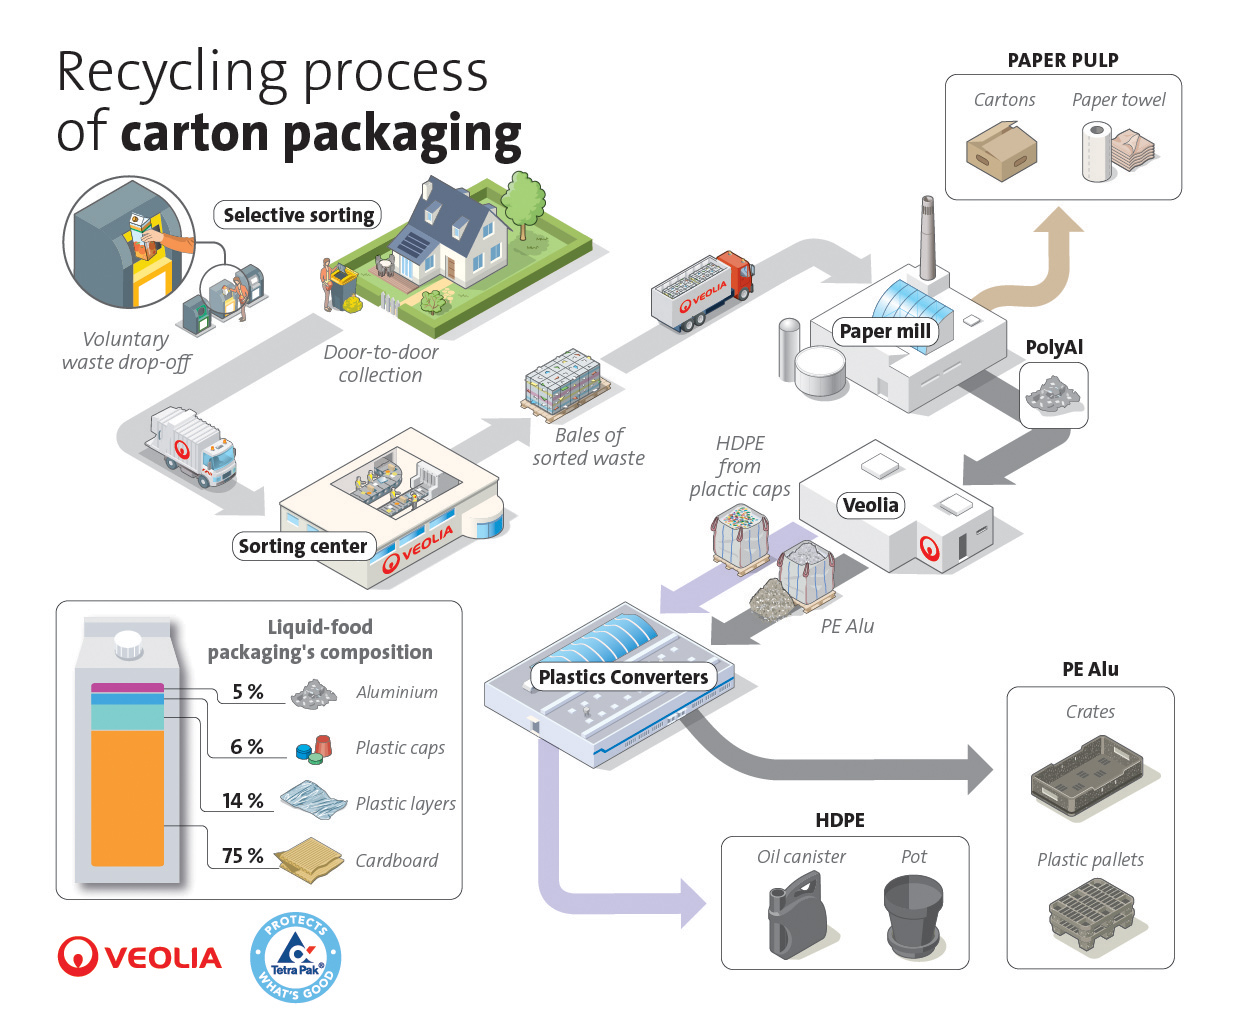 TetraPak Veolia infographic carton recycling process